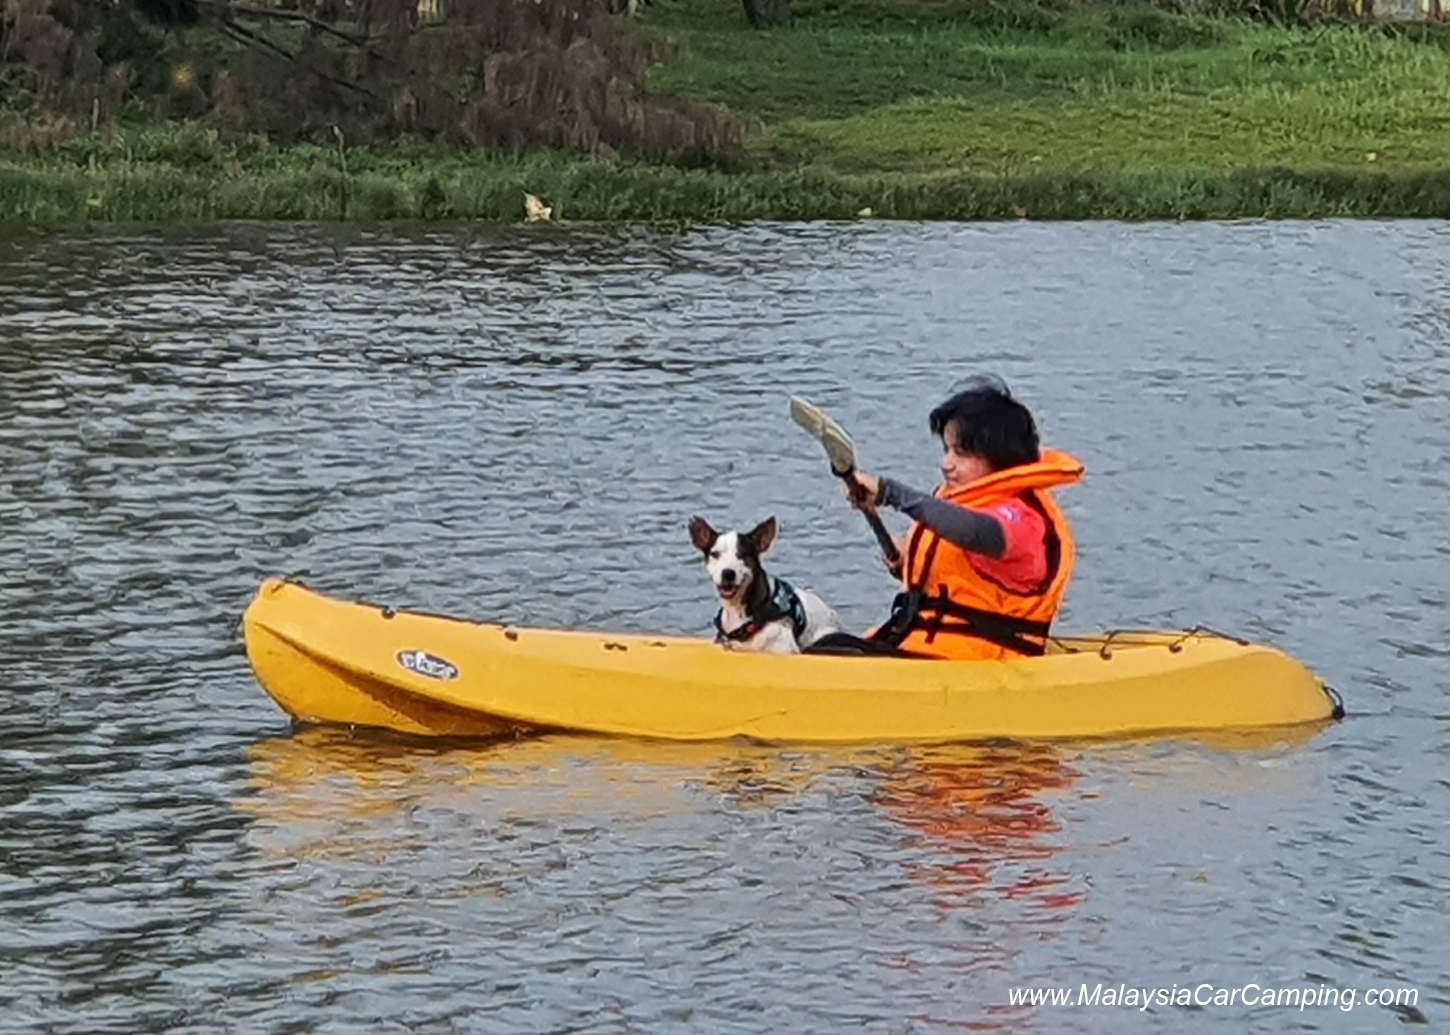 kayak_with_dogs_camping_with_dogs_puppy_lakeside_camping_malaysia_car_camping_malaysia_campsite-2